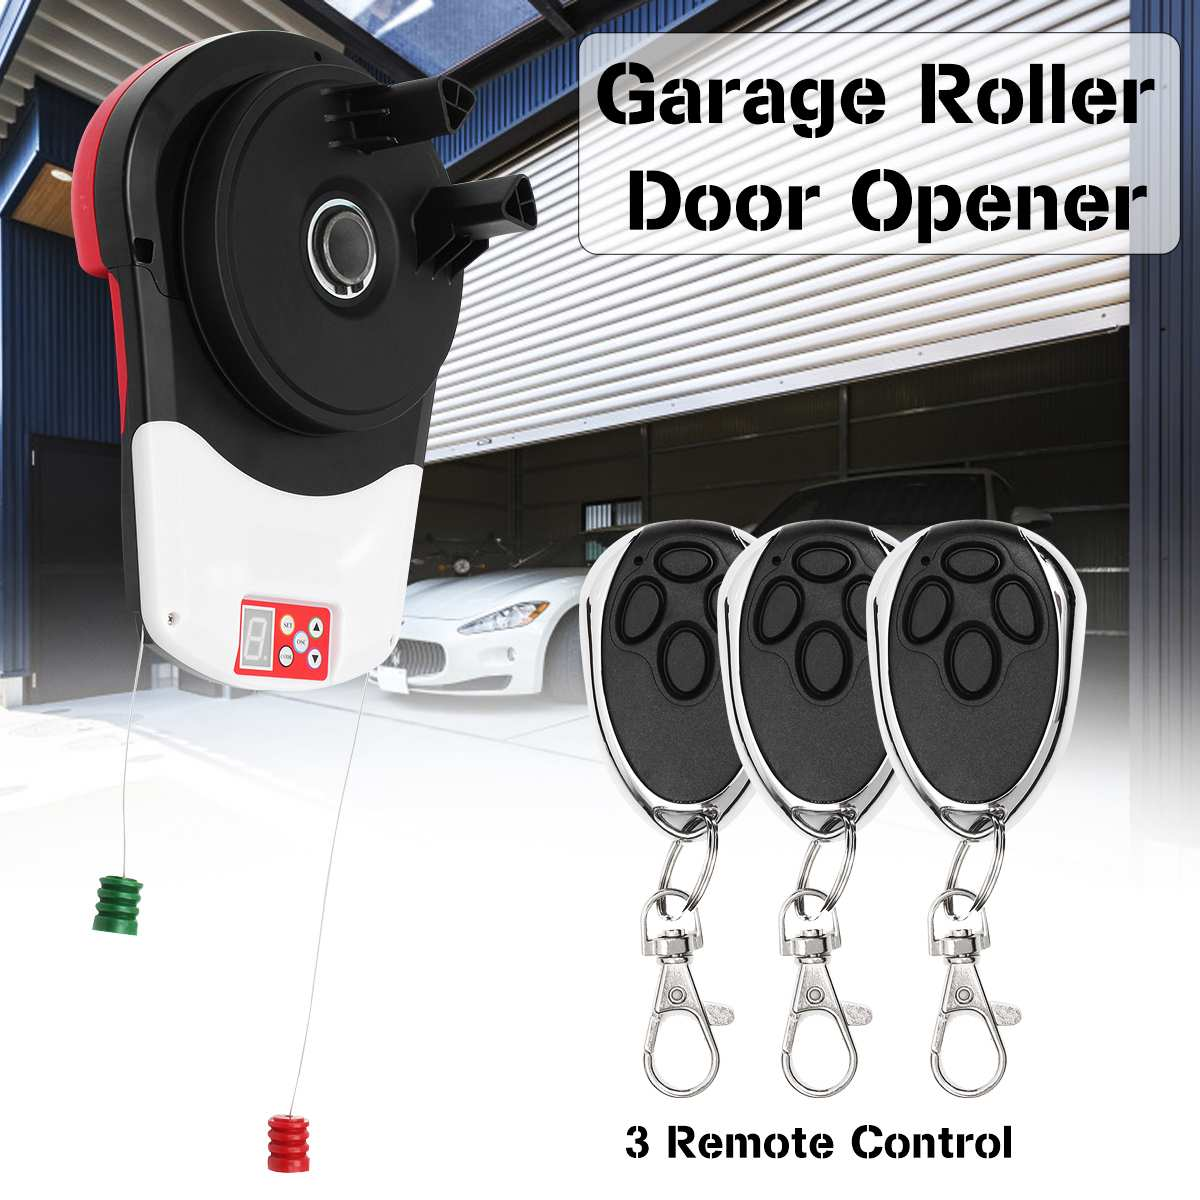 AC 220 240V Gate Opener Garage Roller Door Opener 3 Remote Control Electric Operator for Rolling